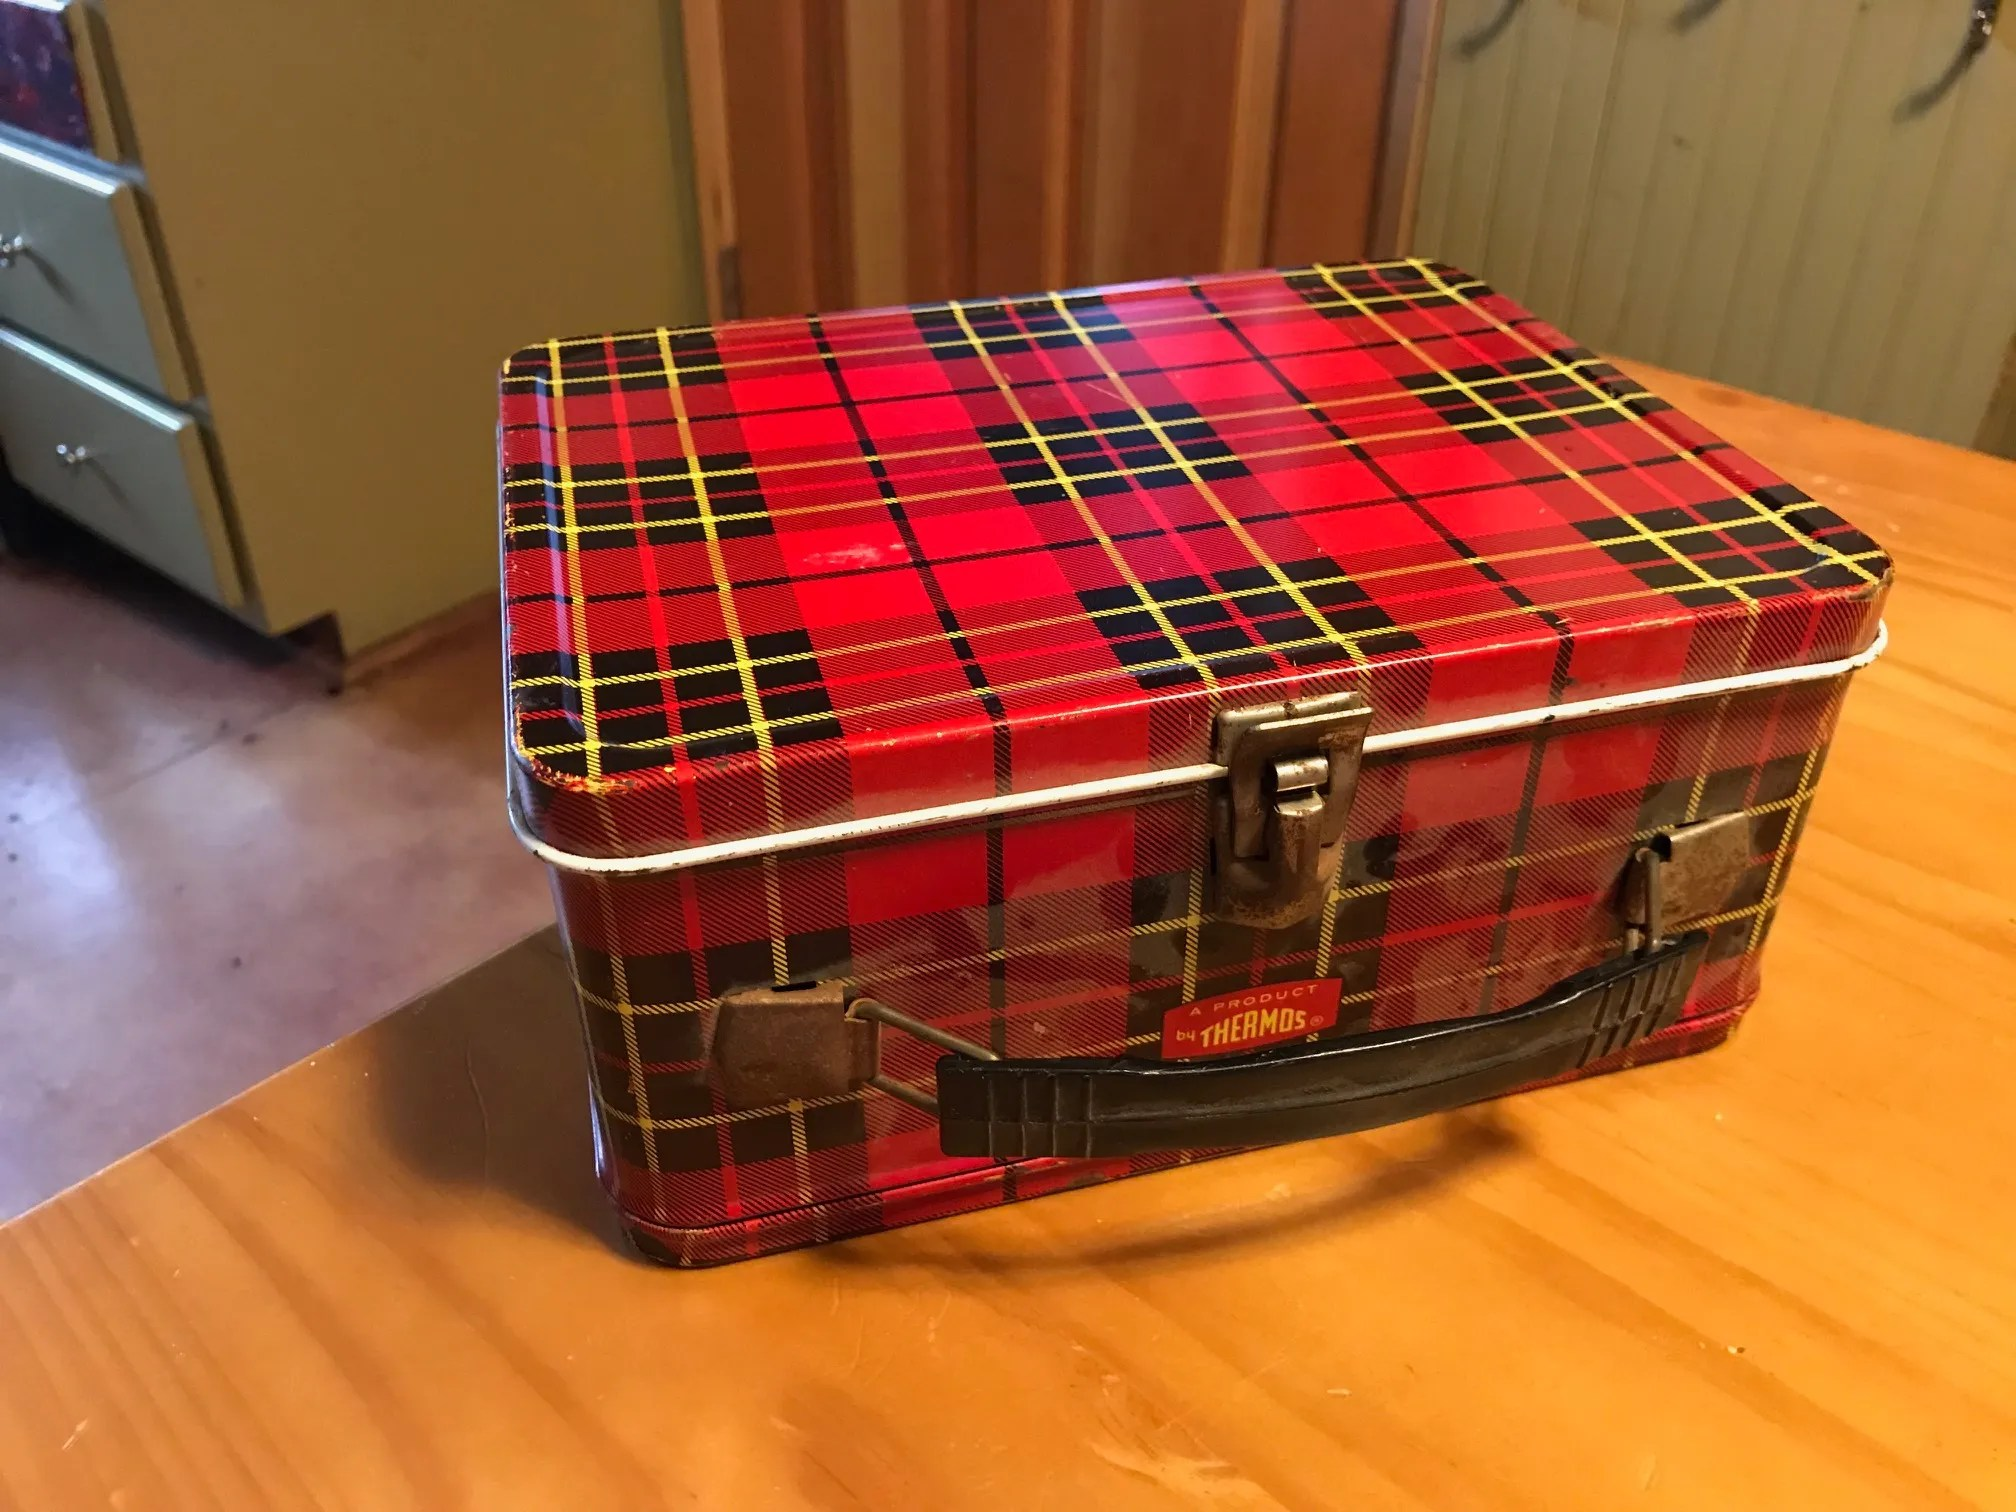 Vintage Red Plaid Thermos Brand Lunchbox: 58,400 ppm Lead + 6 ppm Mercury [90 ppm Lead is unsafe for kids]